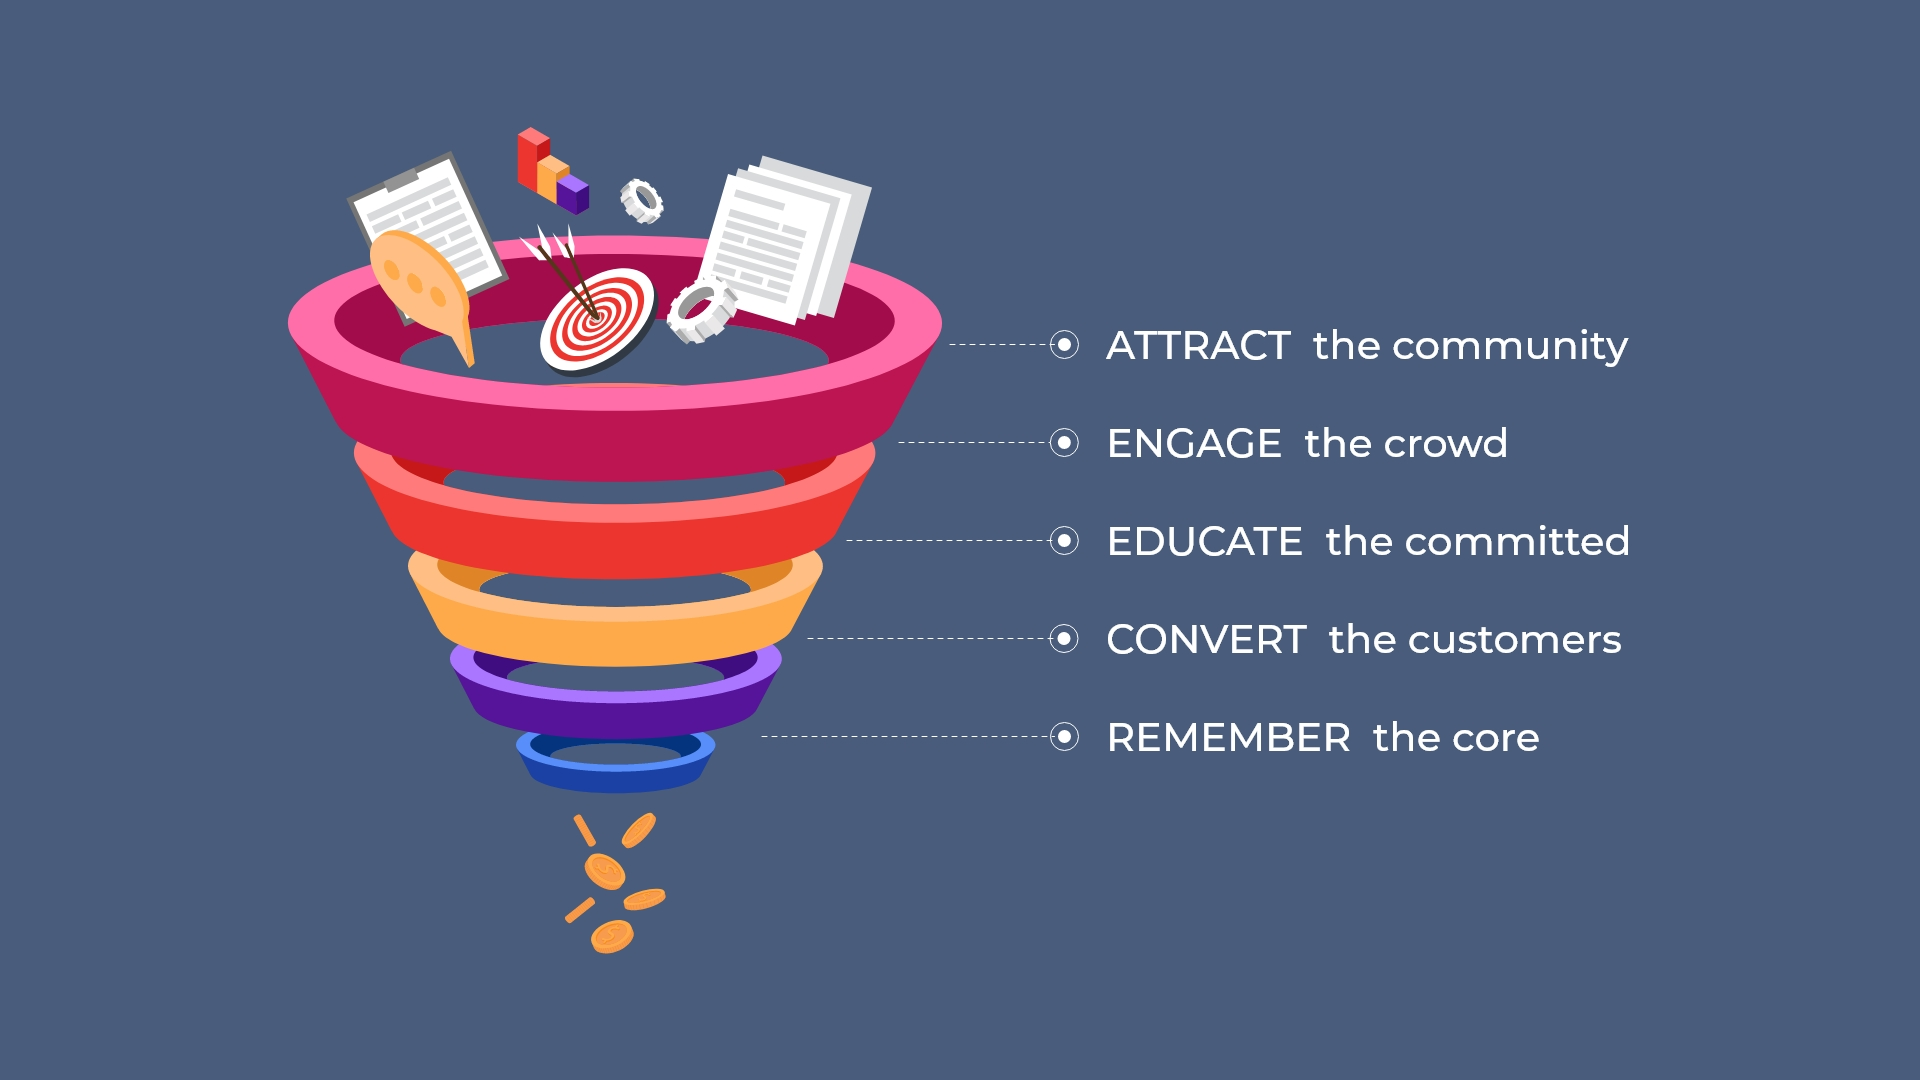 A typical sales funnel